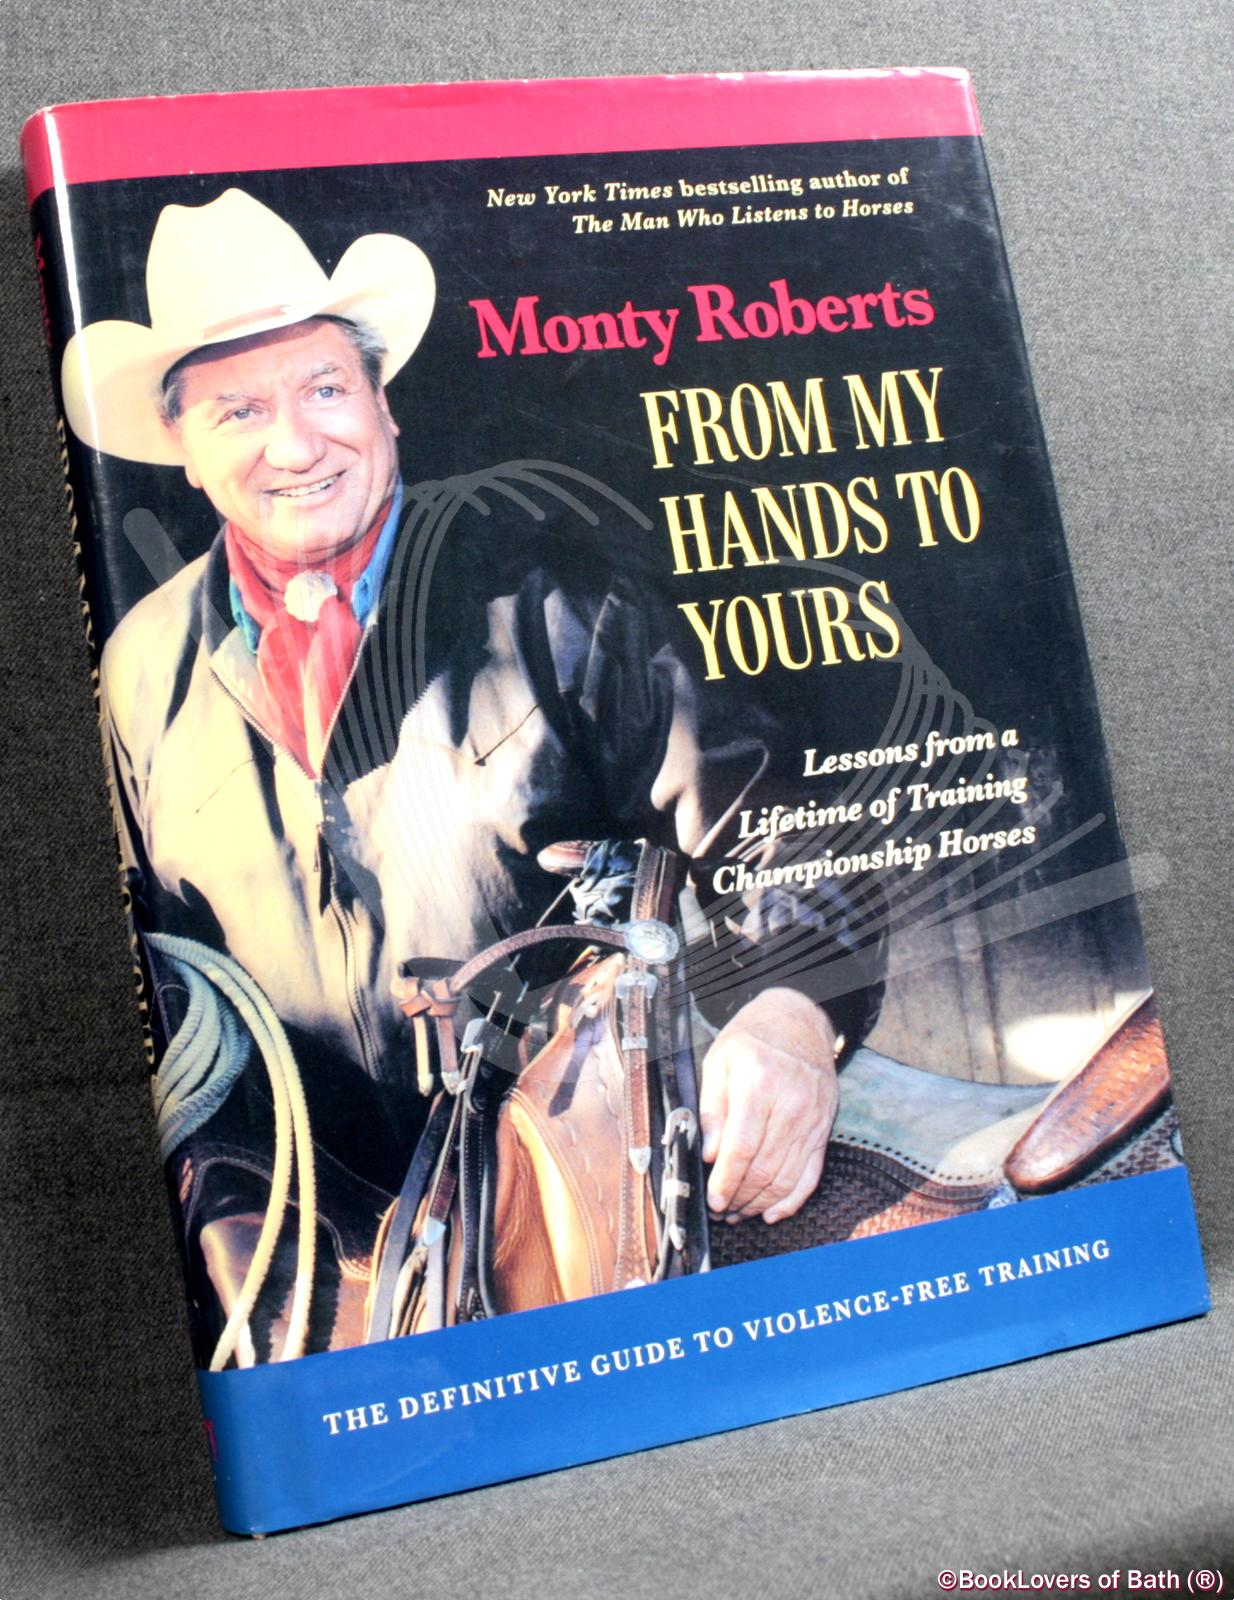 From My Hands to Yours - Monty Roberts